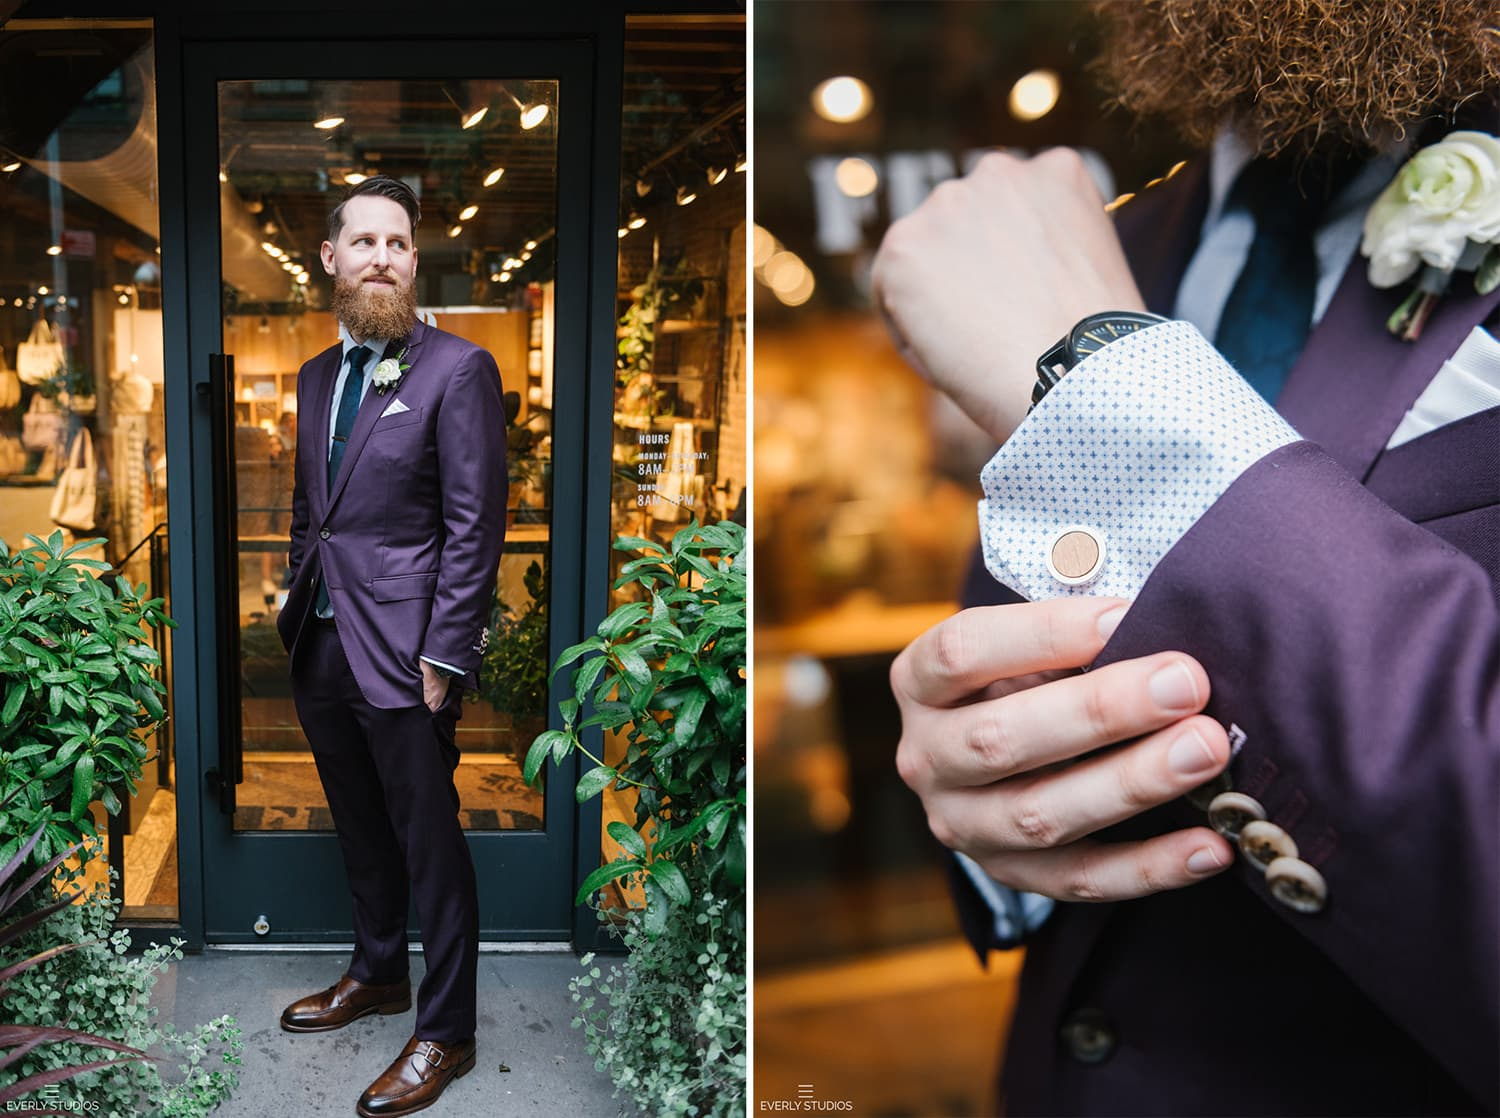 Groom in dark purple wedding suit. Brooklyn, NYC. Photos by NYC elopement photographer Everly Studios, www.everlystudios.com.